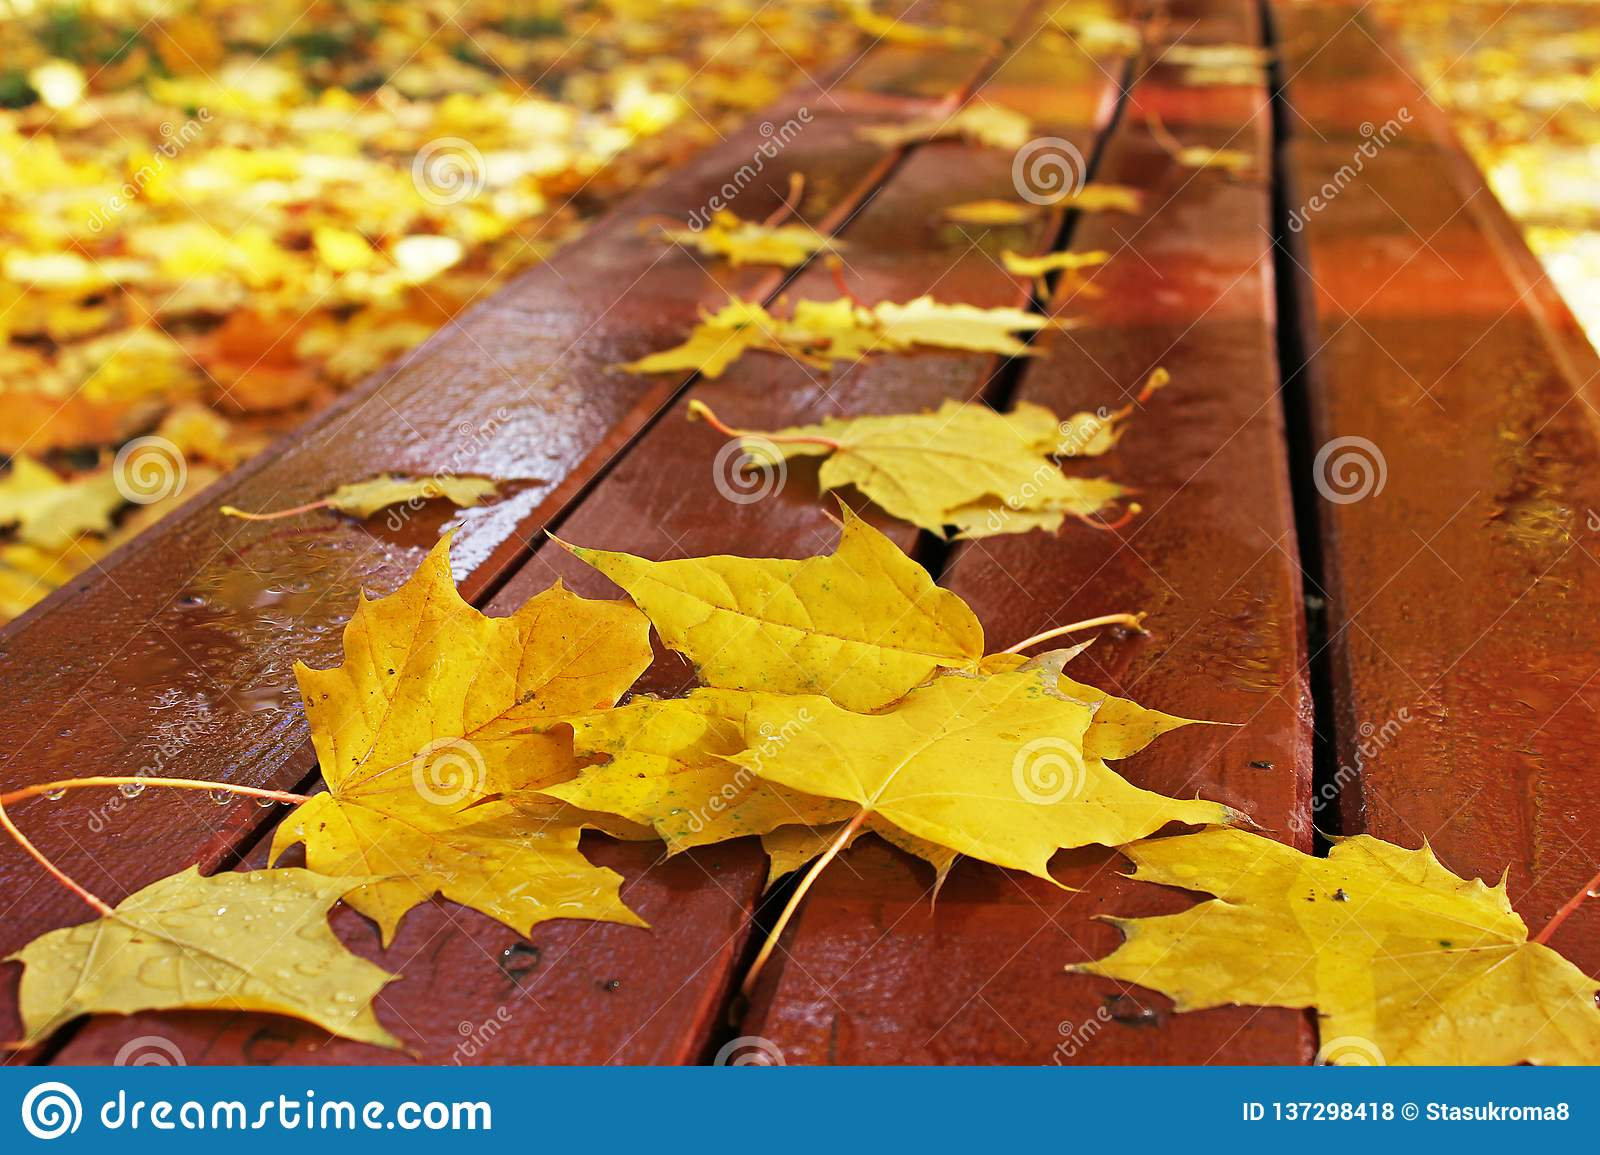 Autumn. Autumn leaves on a bench in the park